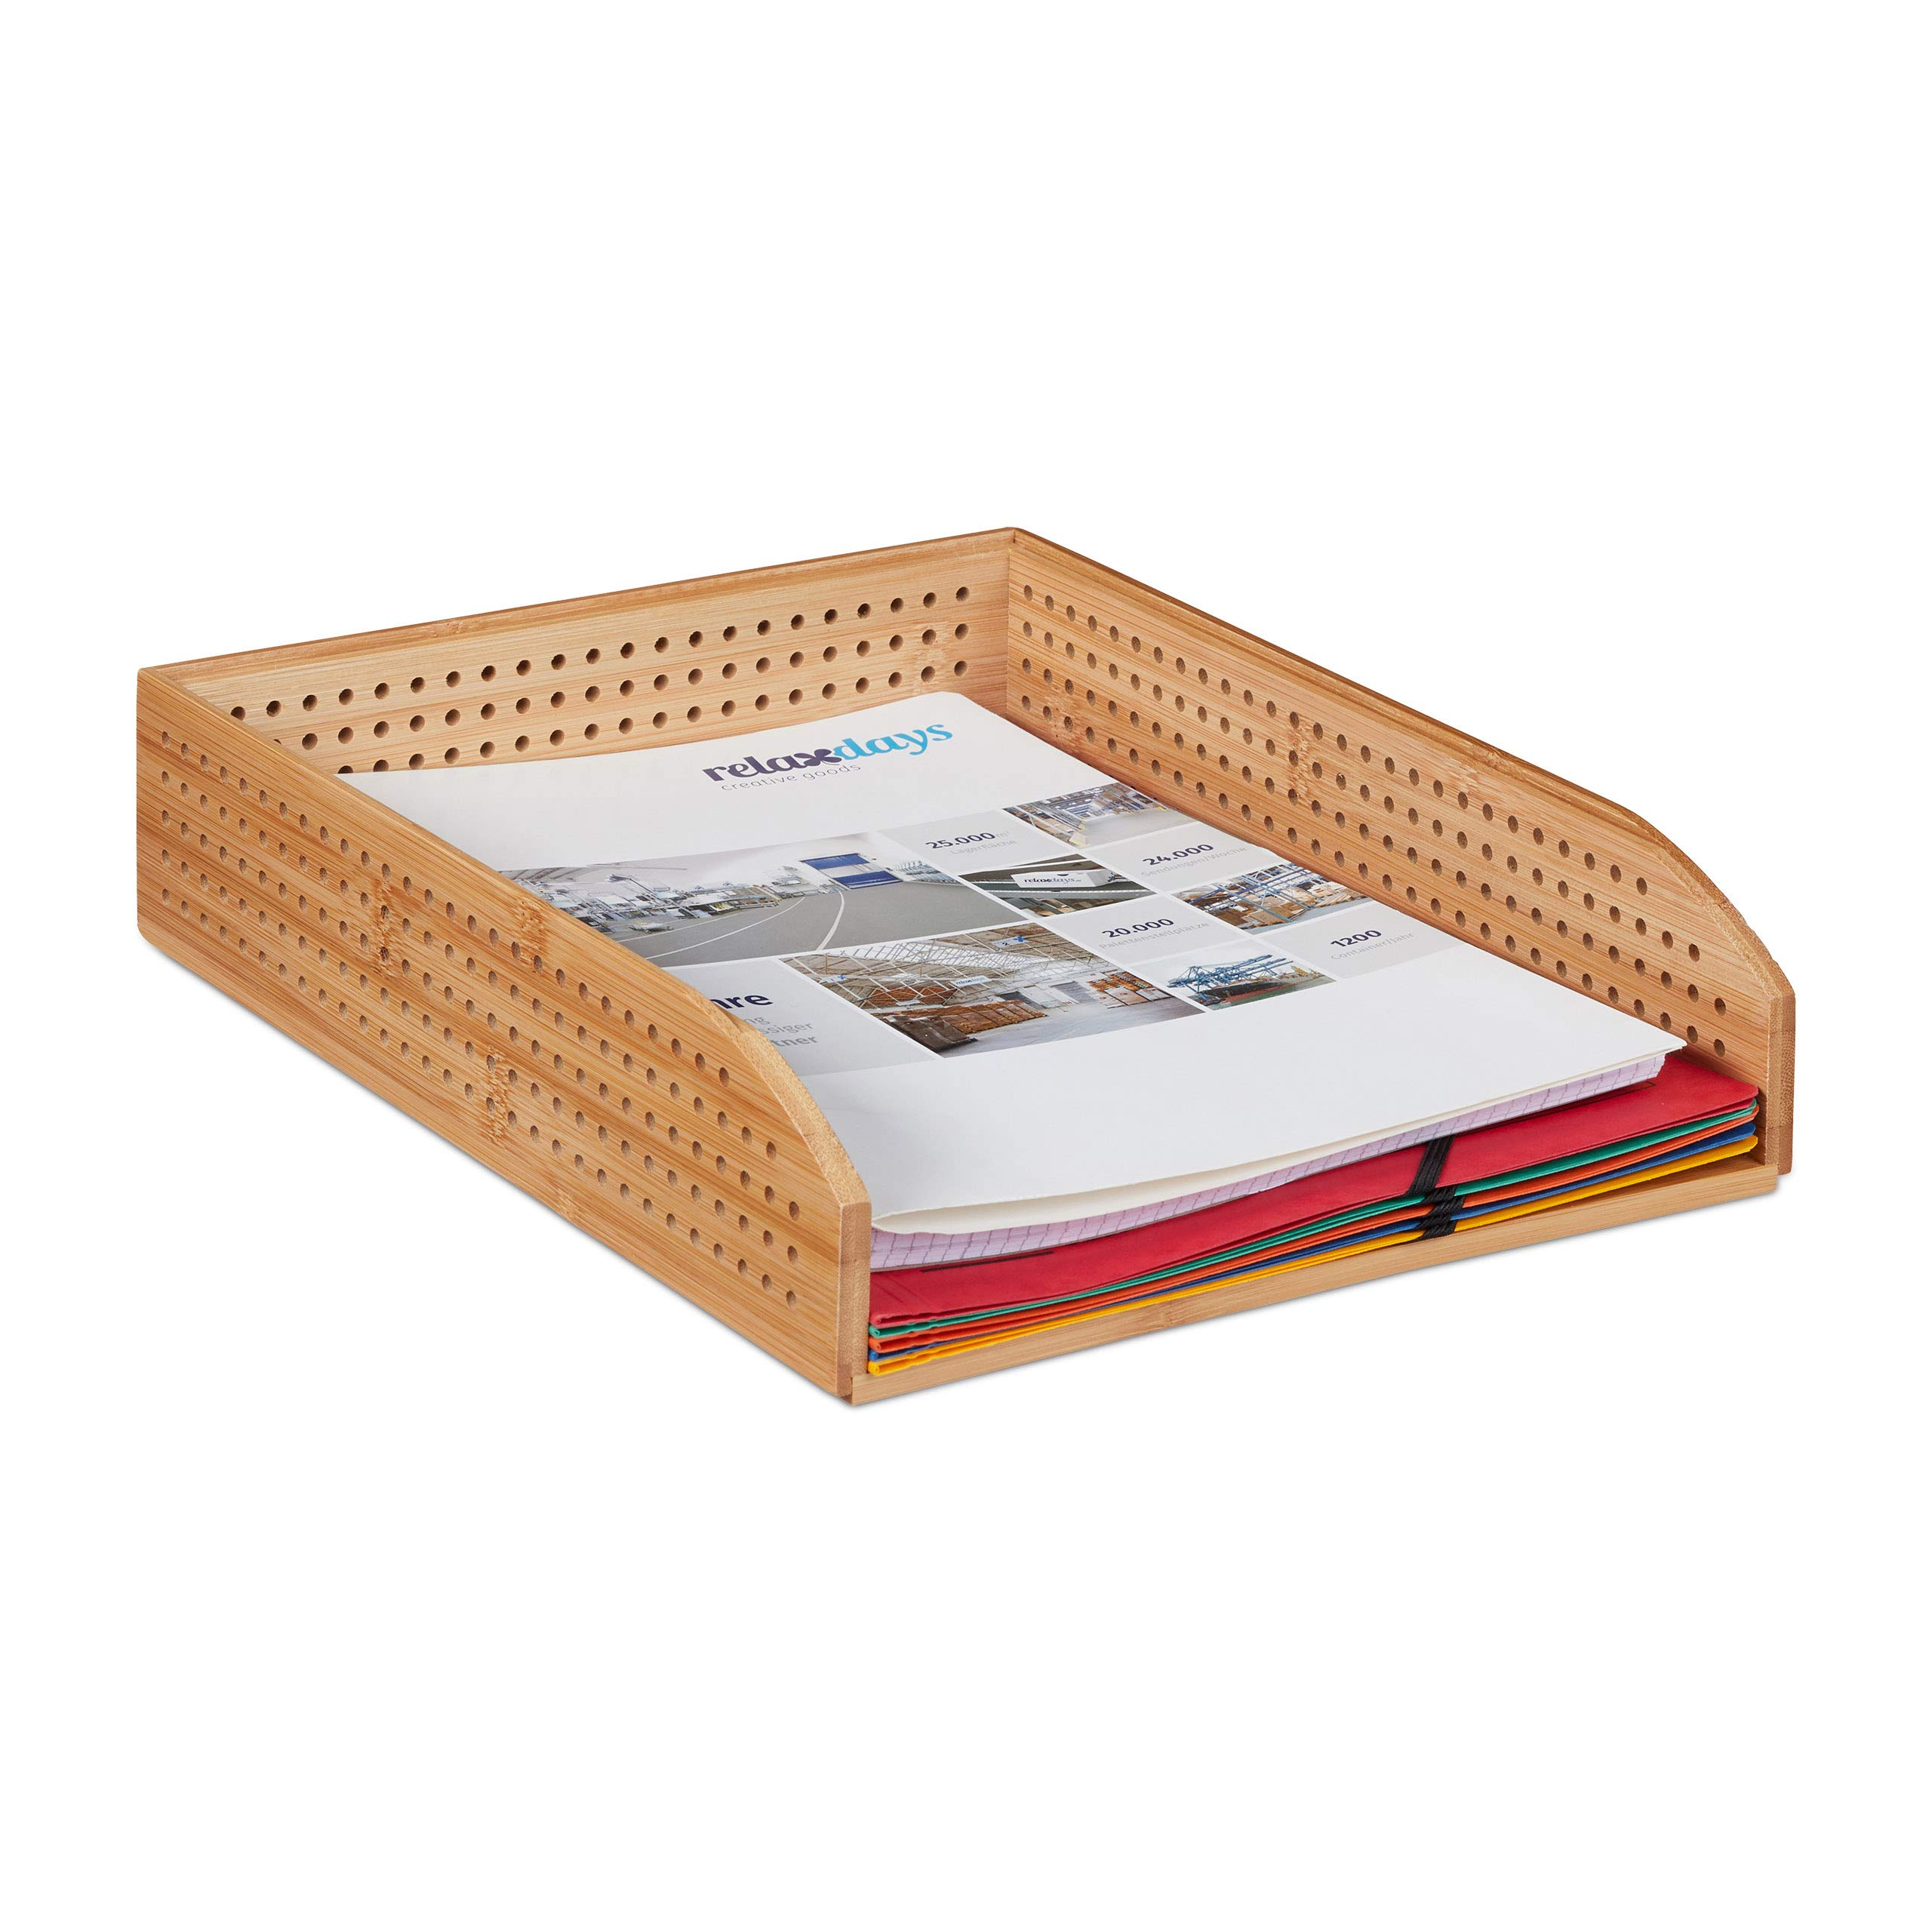 Relaxdays Bamboo Document Holder Tray, Perforated, Stackable, A4, Desk Organizer, Office, Natural, HWD: app. 7 x 25 x 33 cm